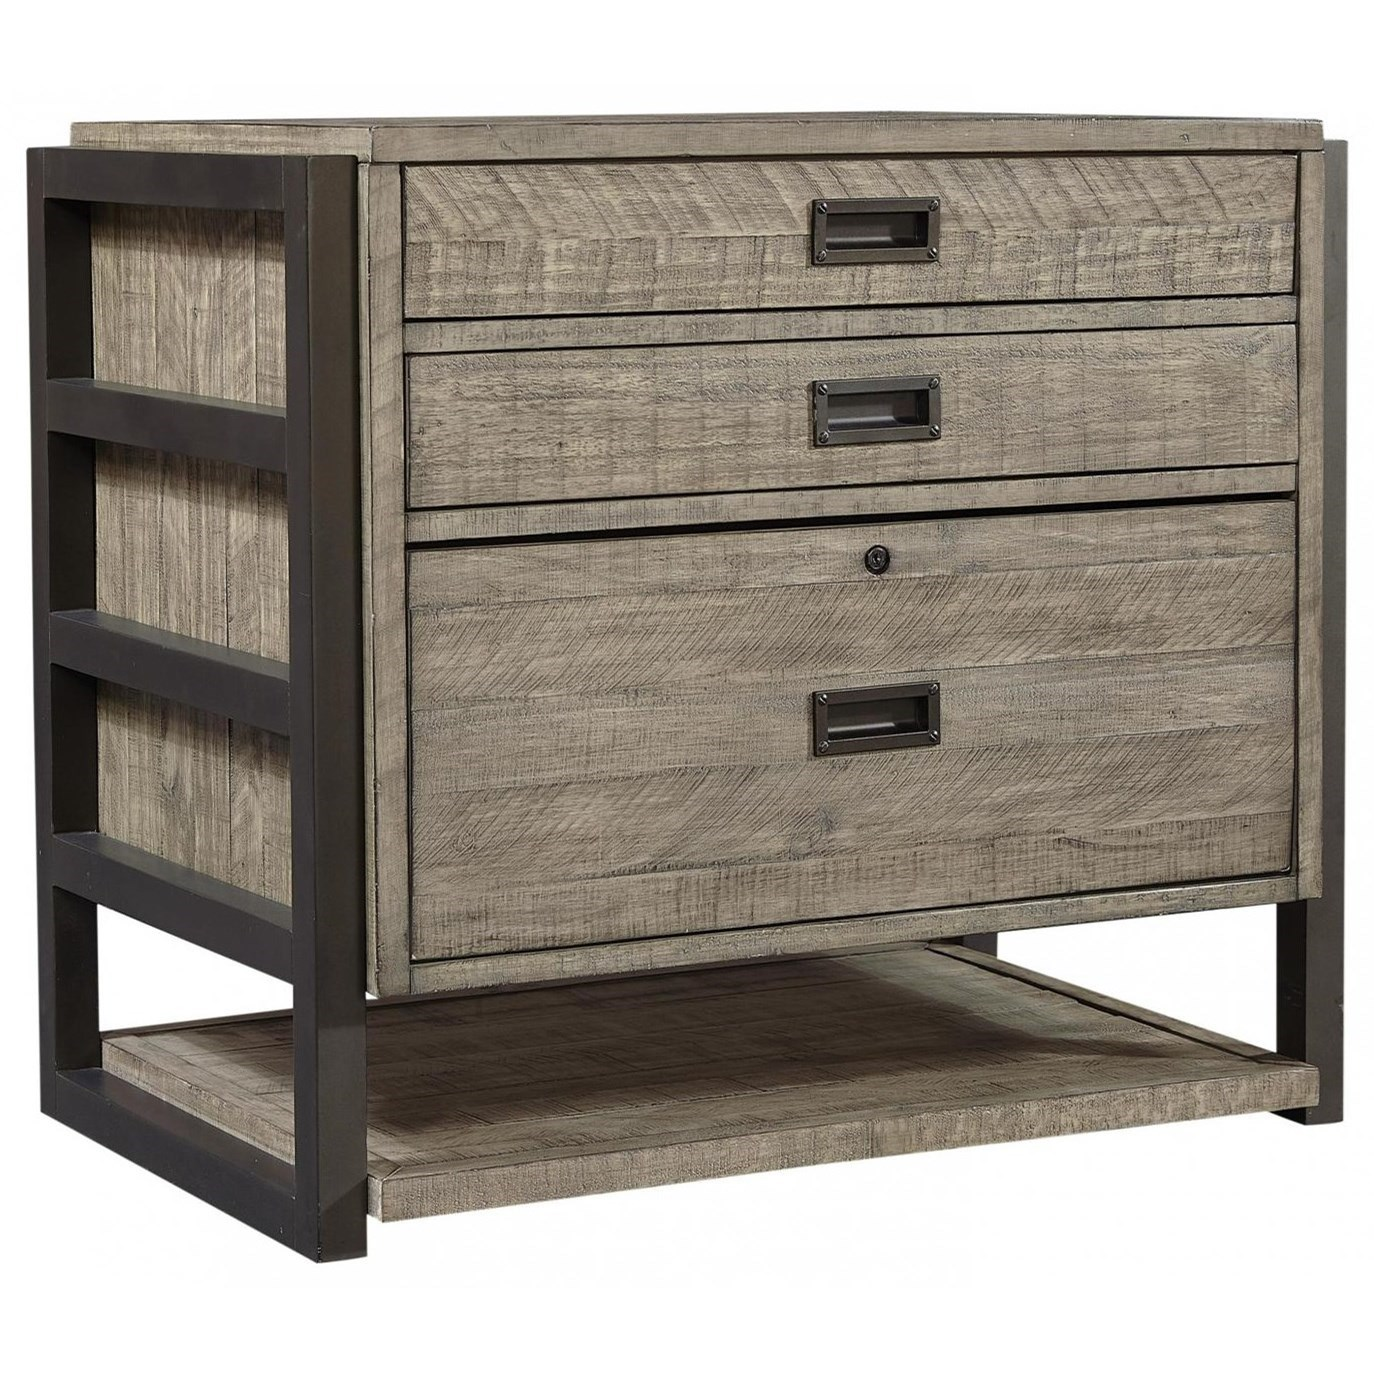 Grayson File Cabinet by Aspenhome at Stoney Creek Furniture